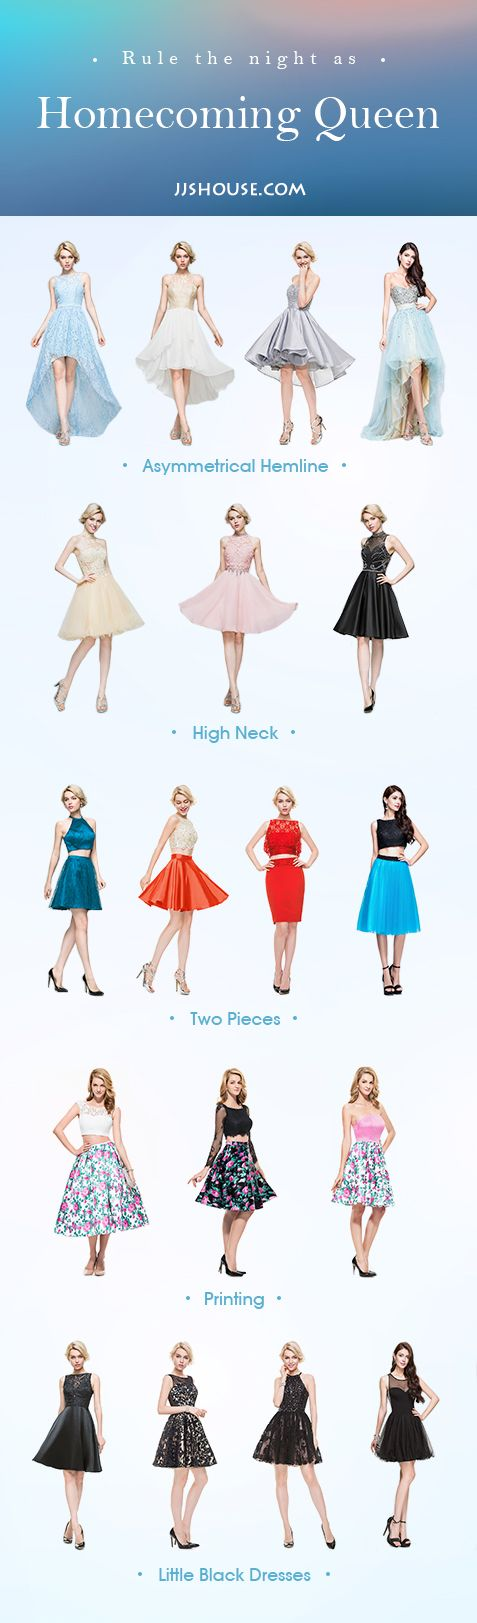 Rule the night as Homecoming Queen! 2016 New Homecoming Dresses Added. #JJsHouse